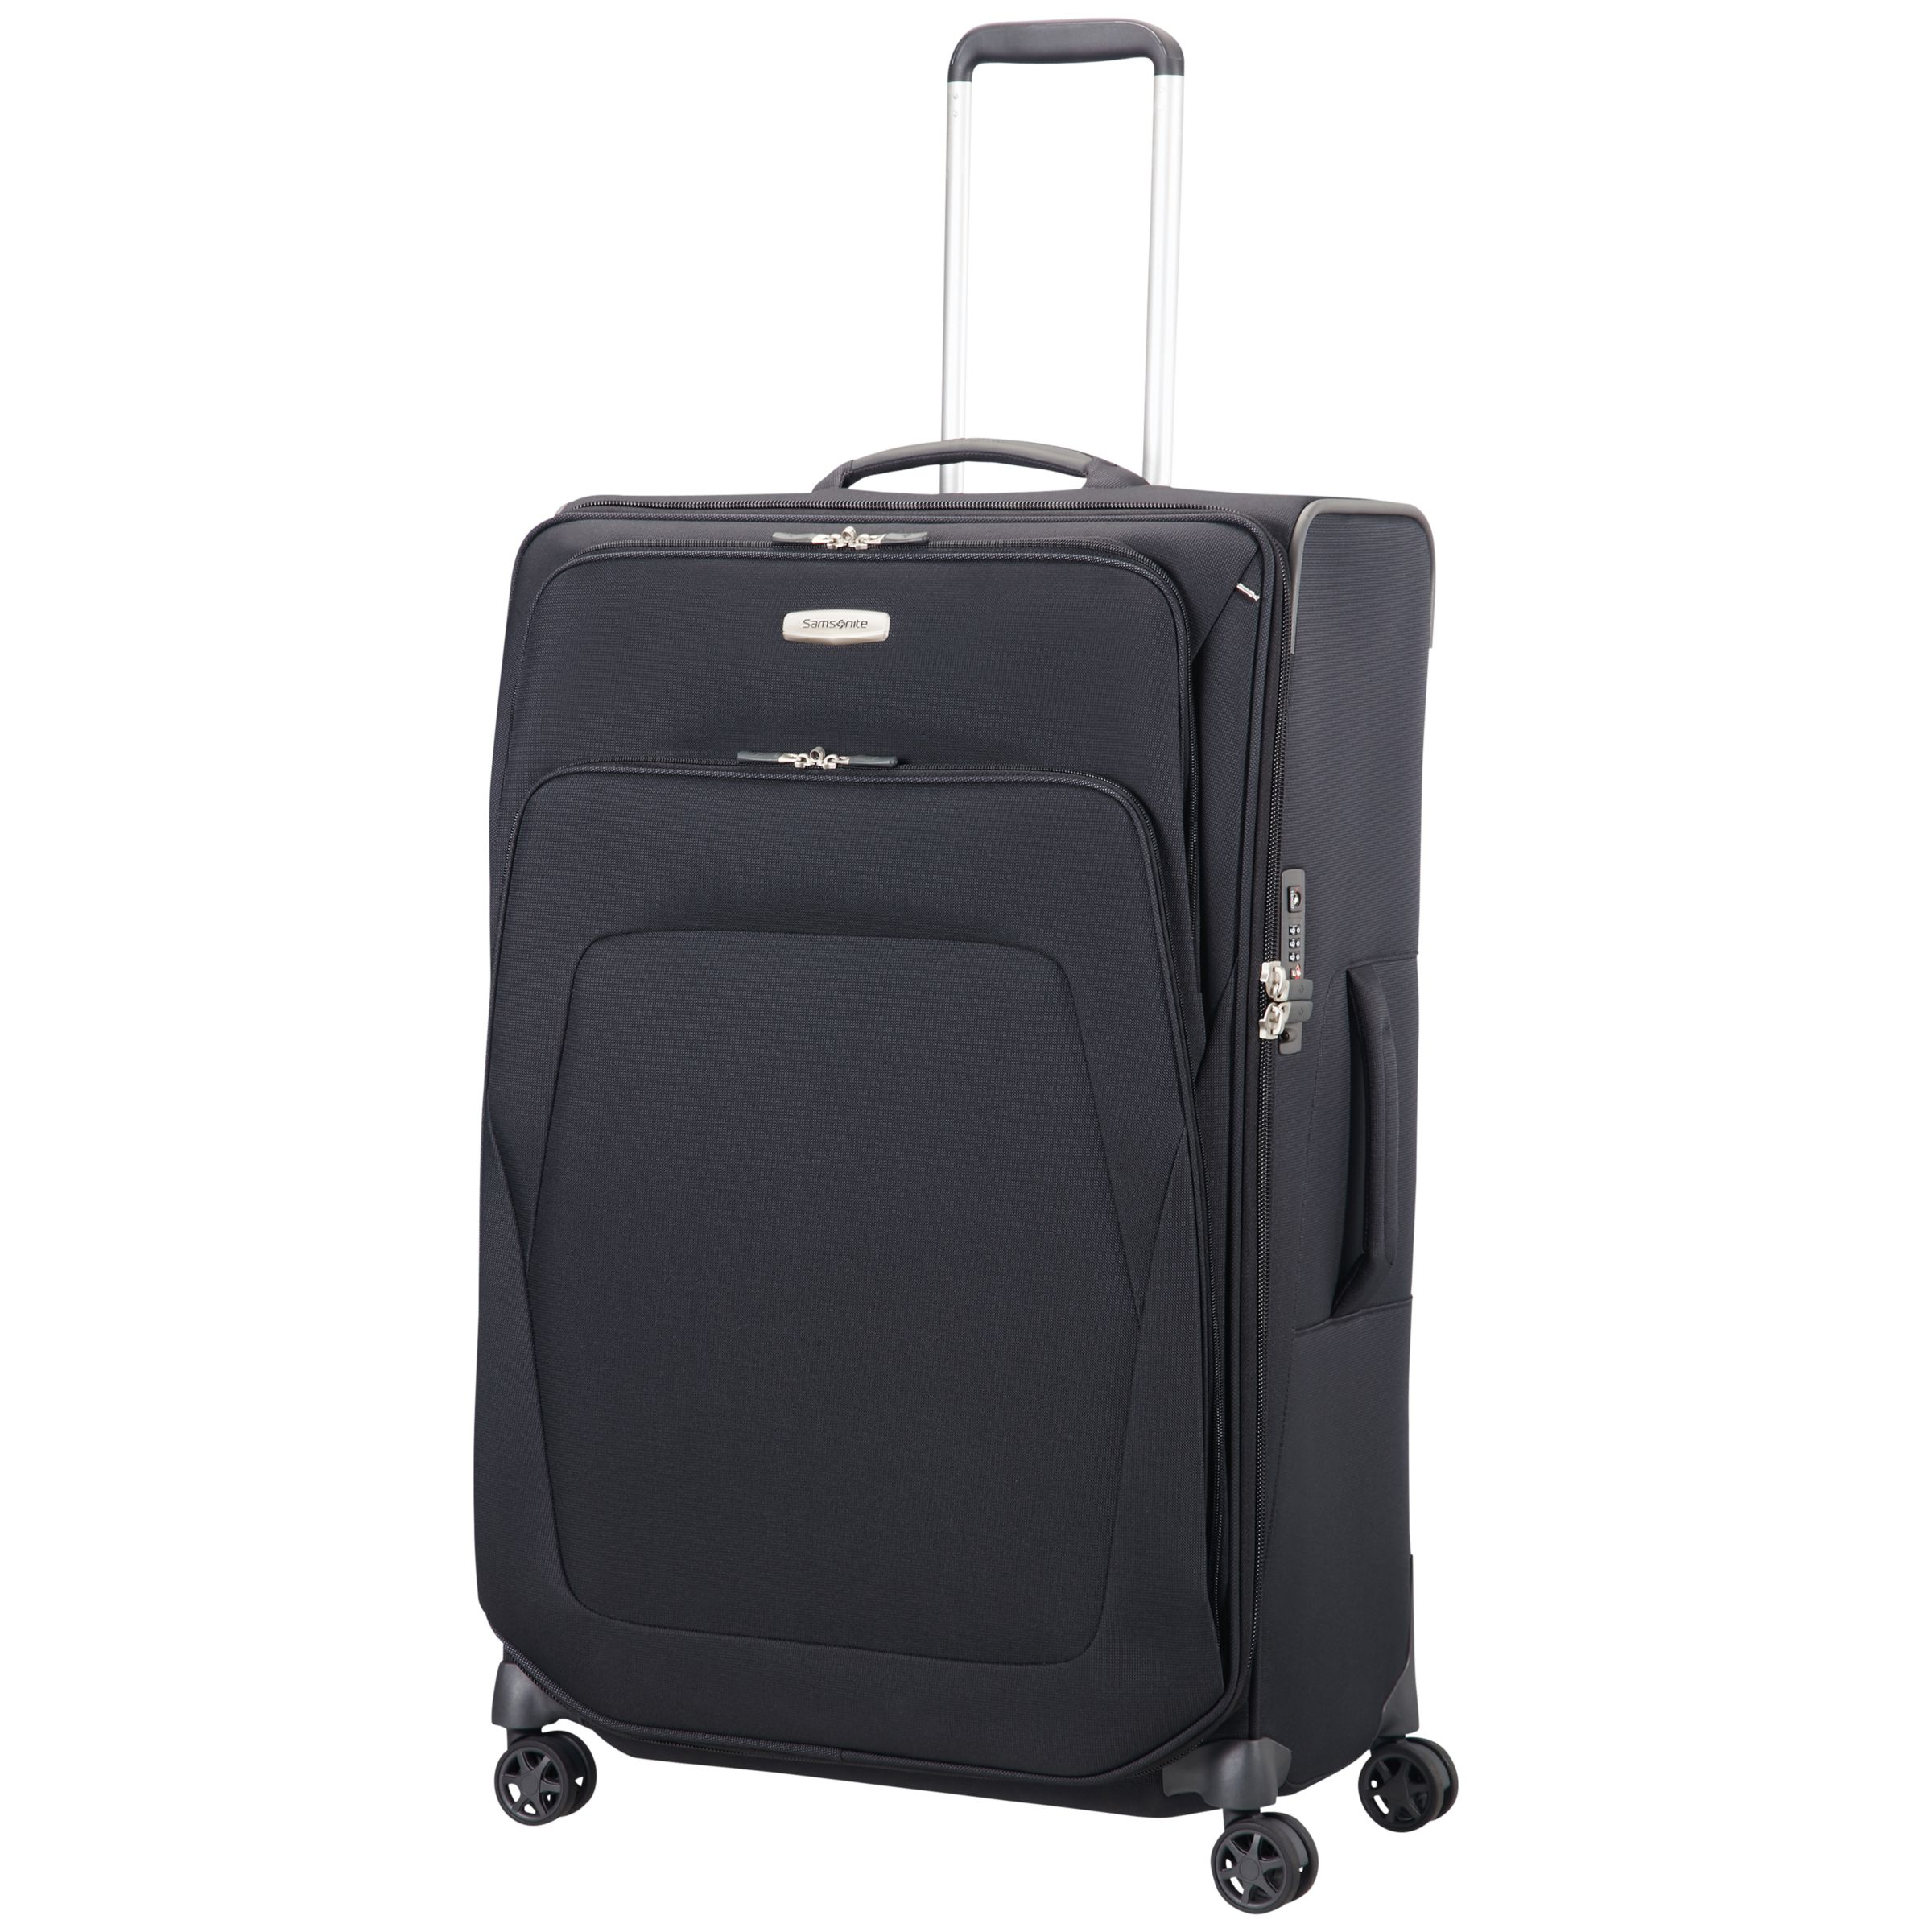 Samsonite Samsonite Spark 79cm 4-Wheel Large Suitcase